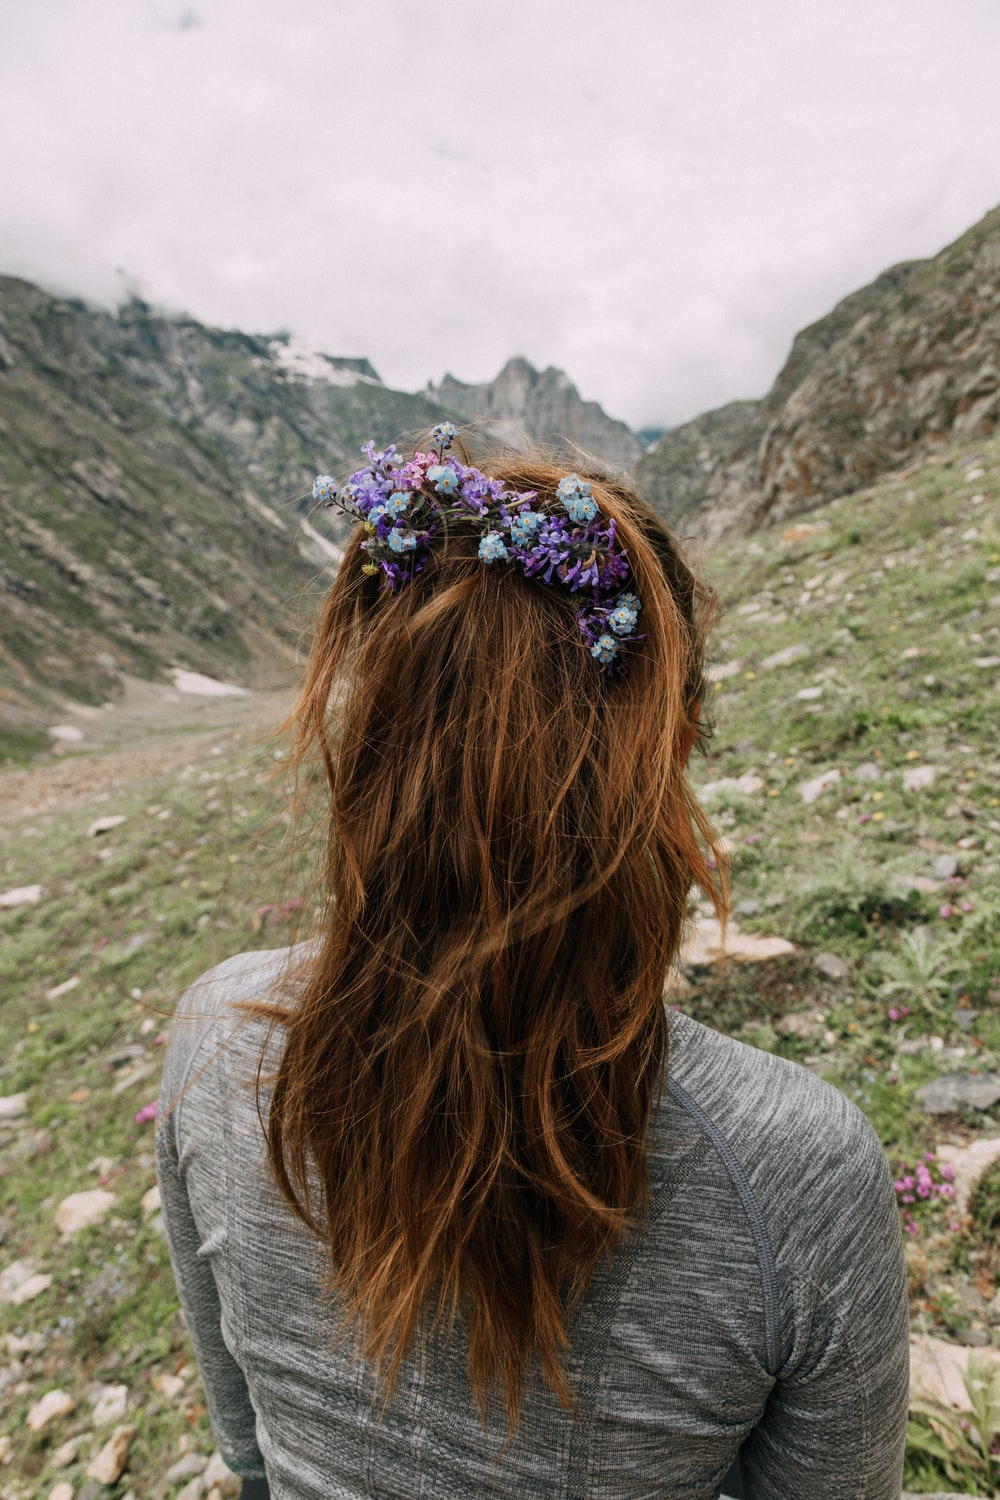 back view of woman with purple floral hairpiece